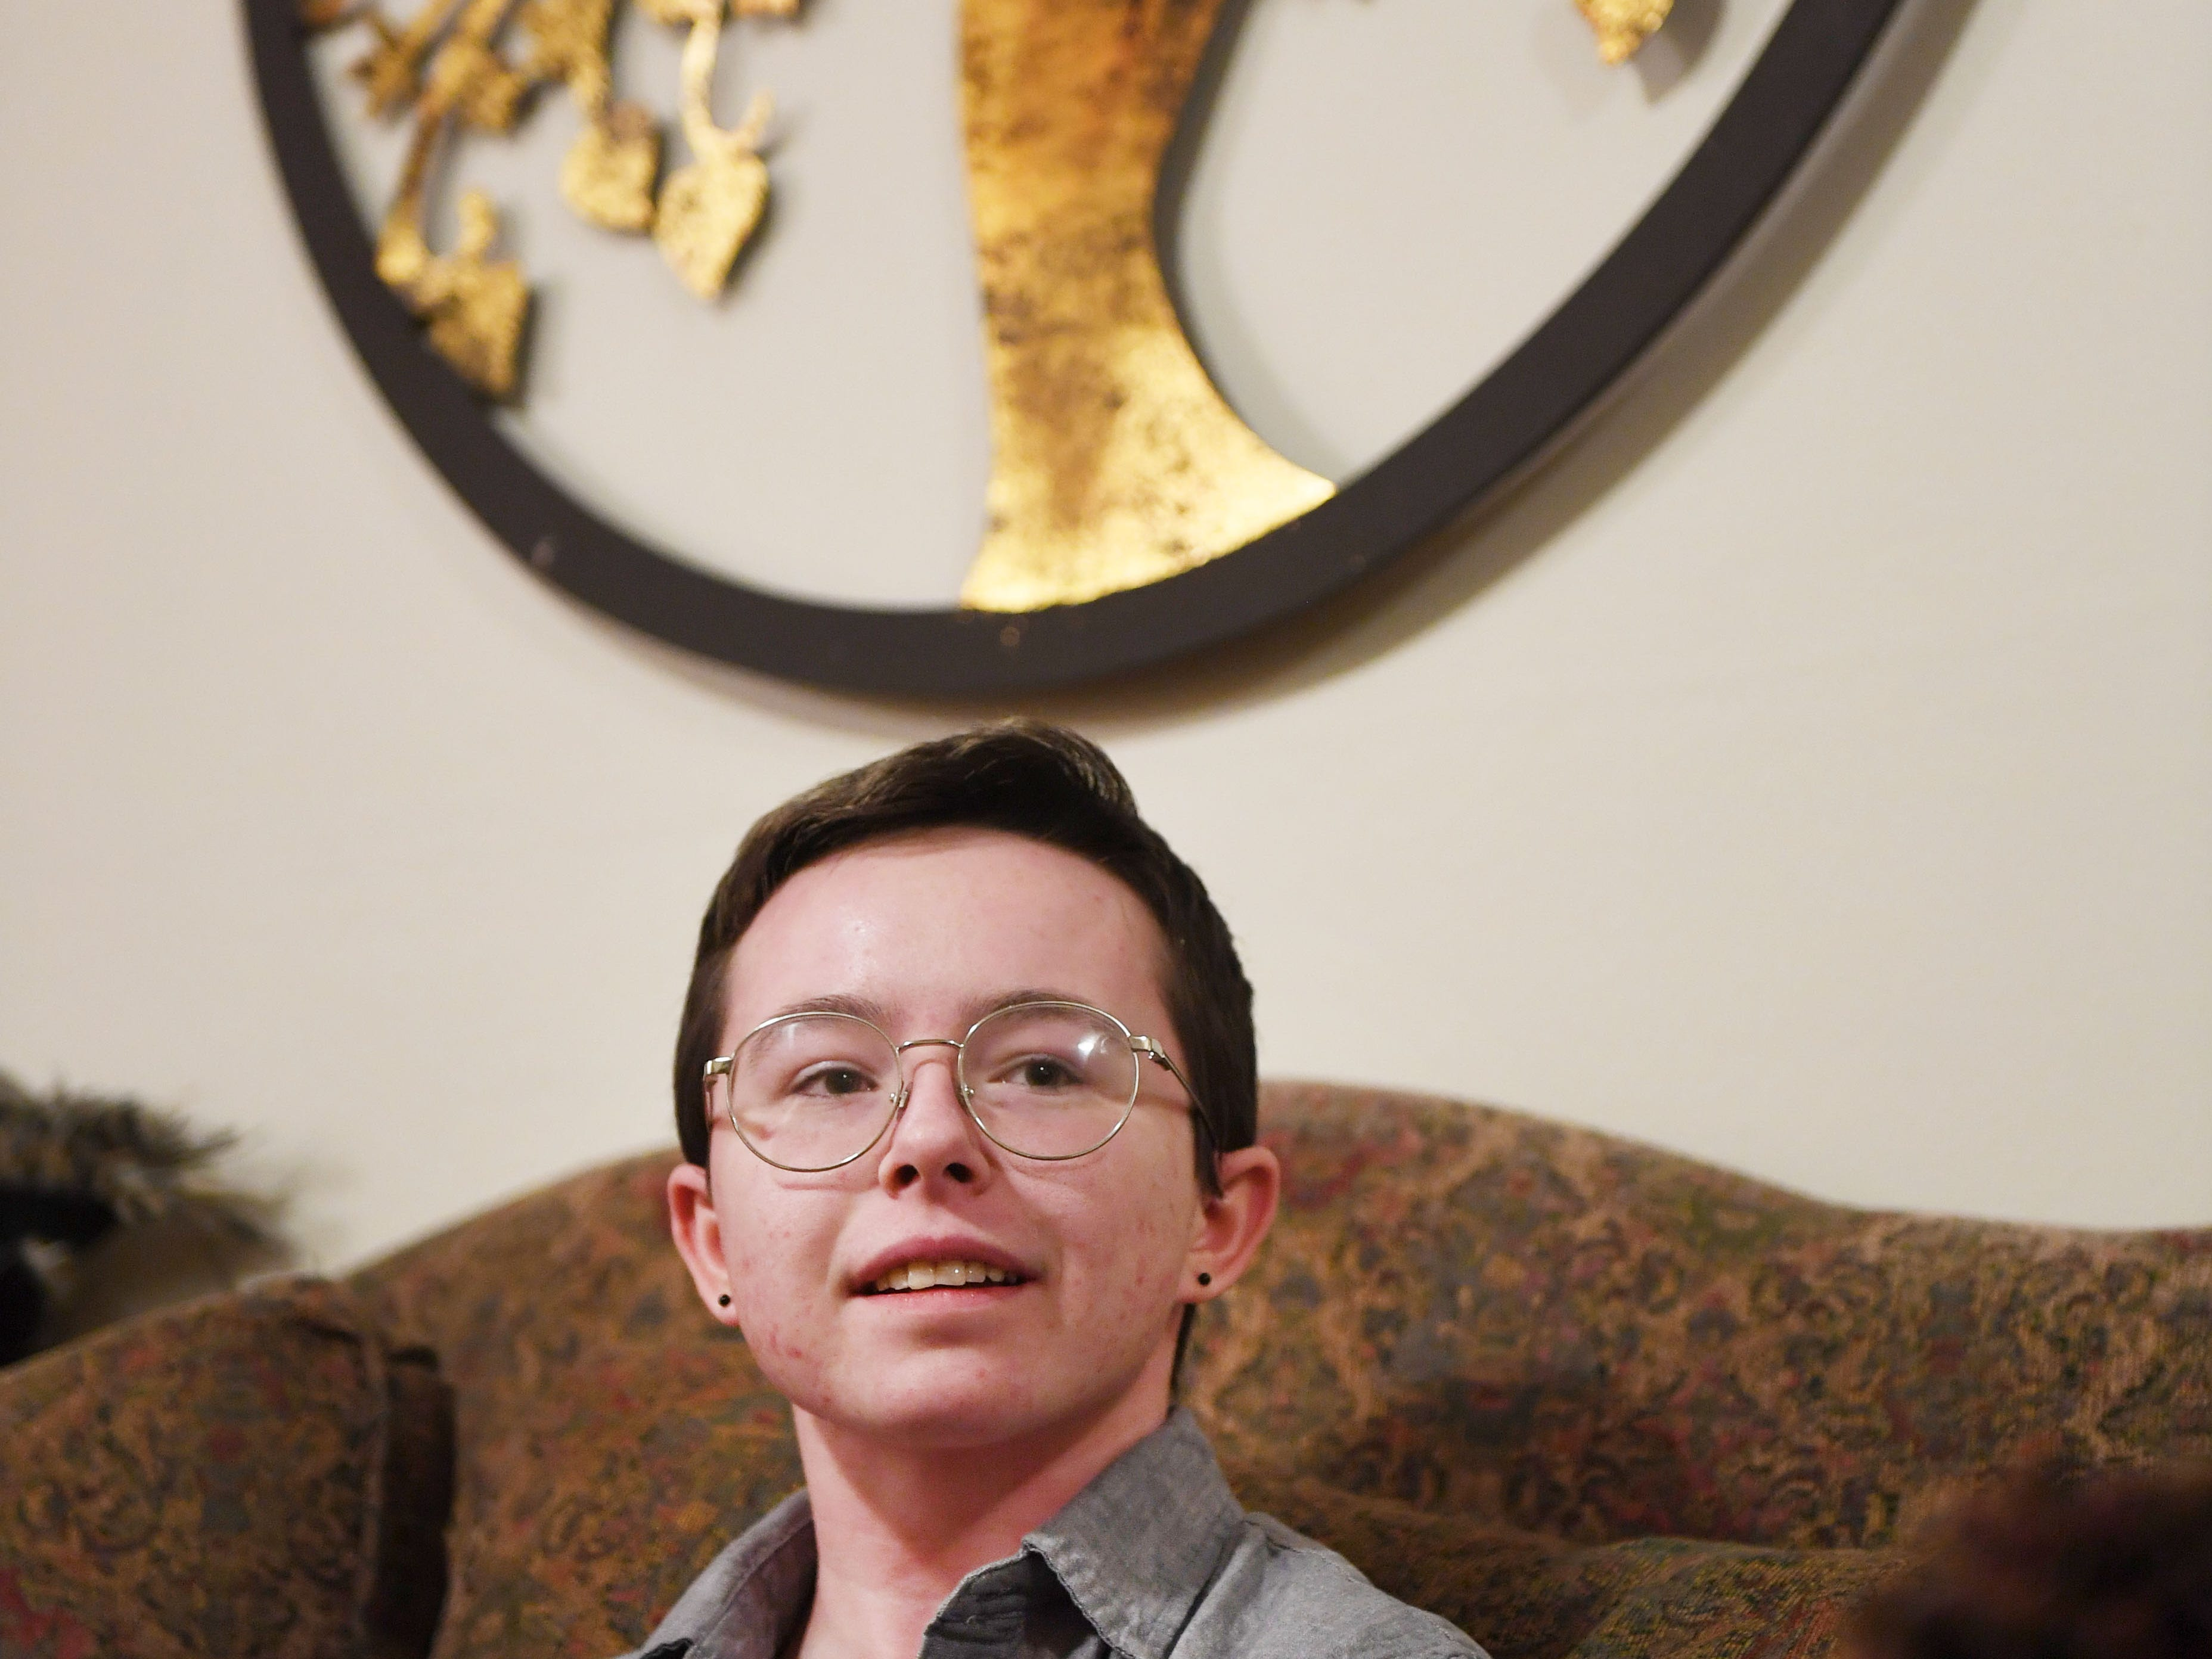 Oliver Dickman talks on Monday, Feb. 25, in Yankton about his experience transitioning.